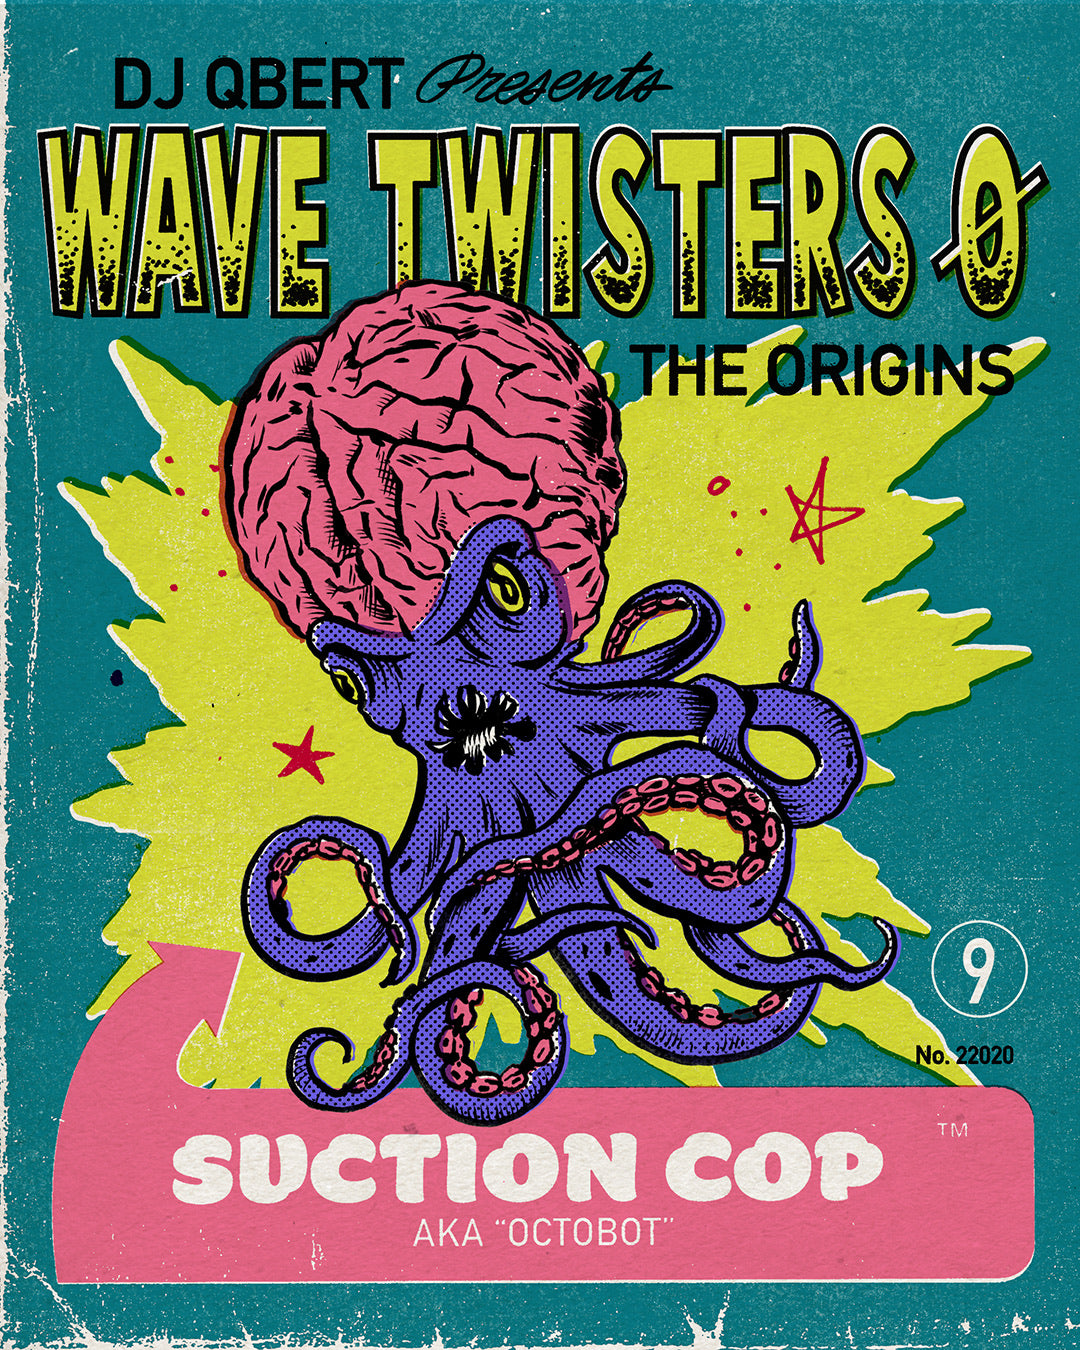 """SUCTION COP""  from ""WAVE TWISTERS ZERO: Origins (single Extended version)"